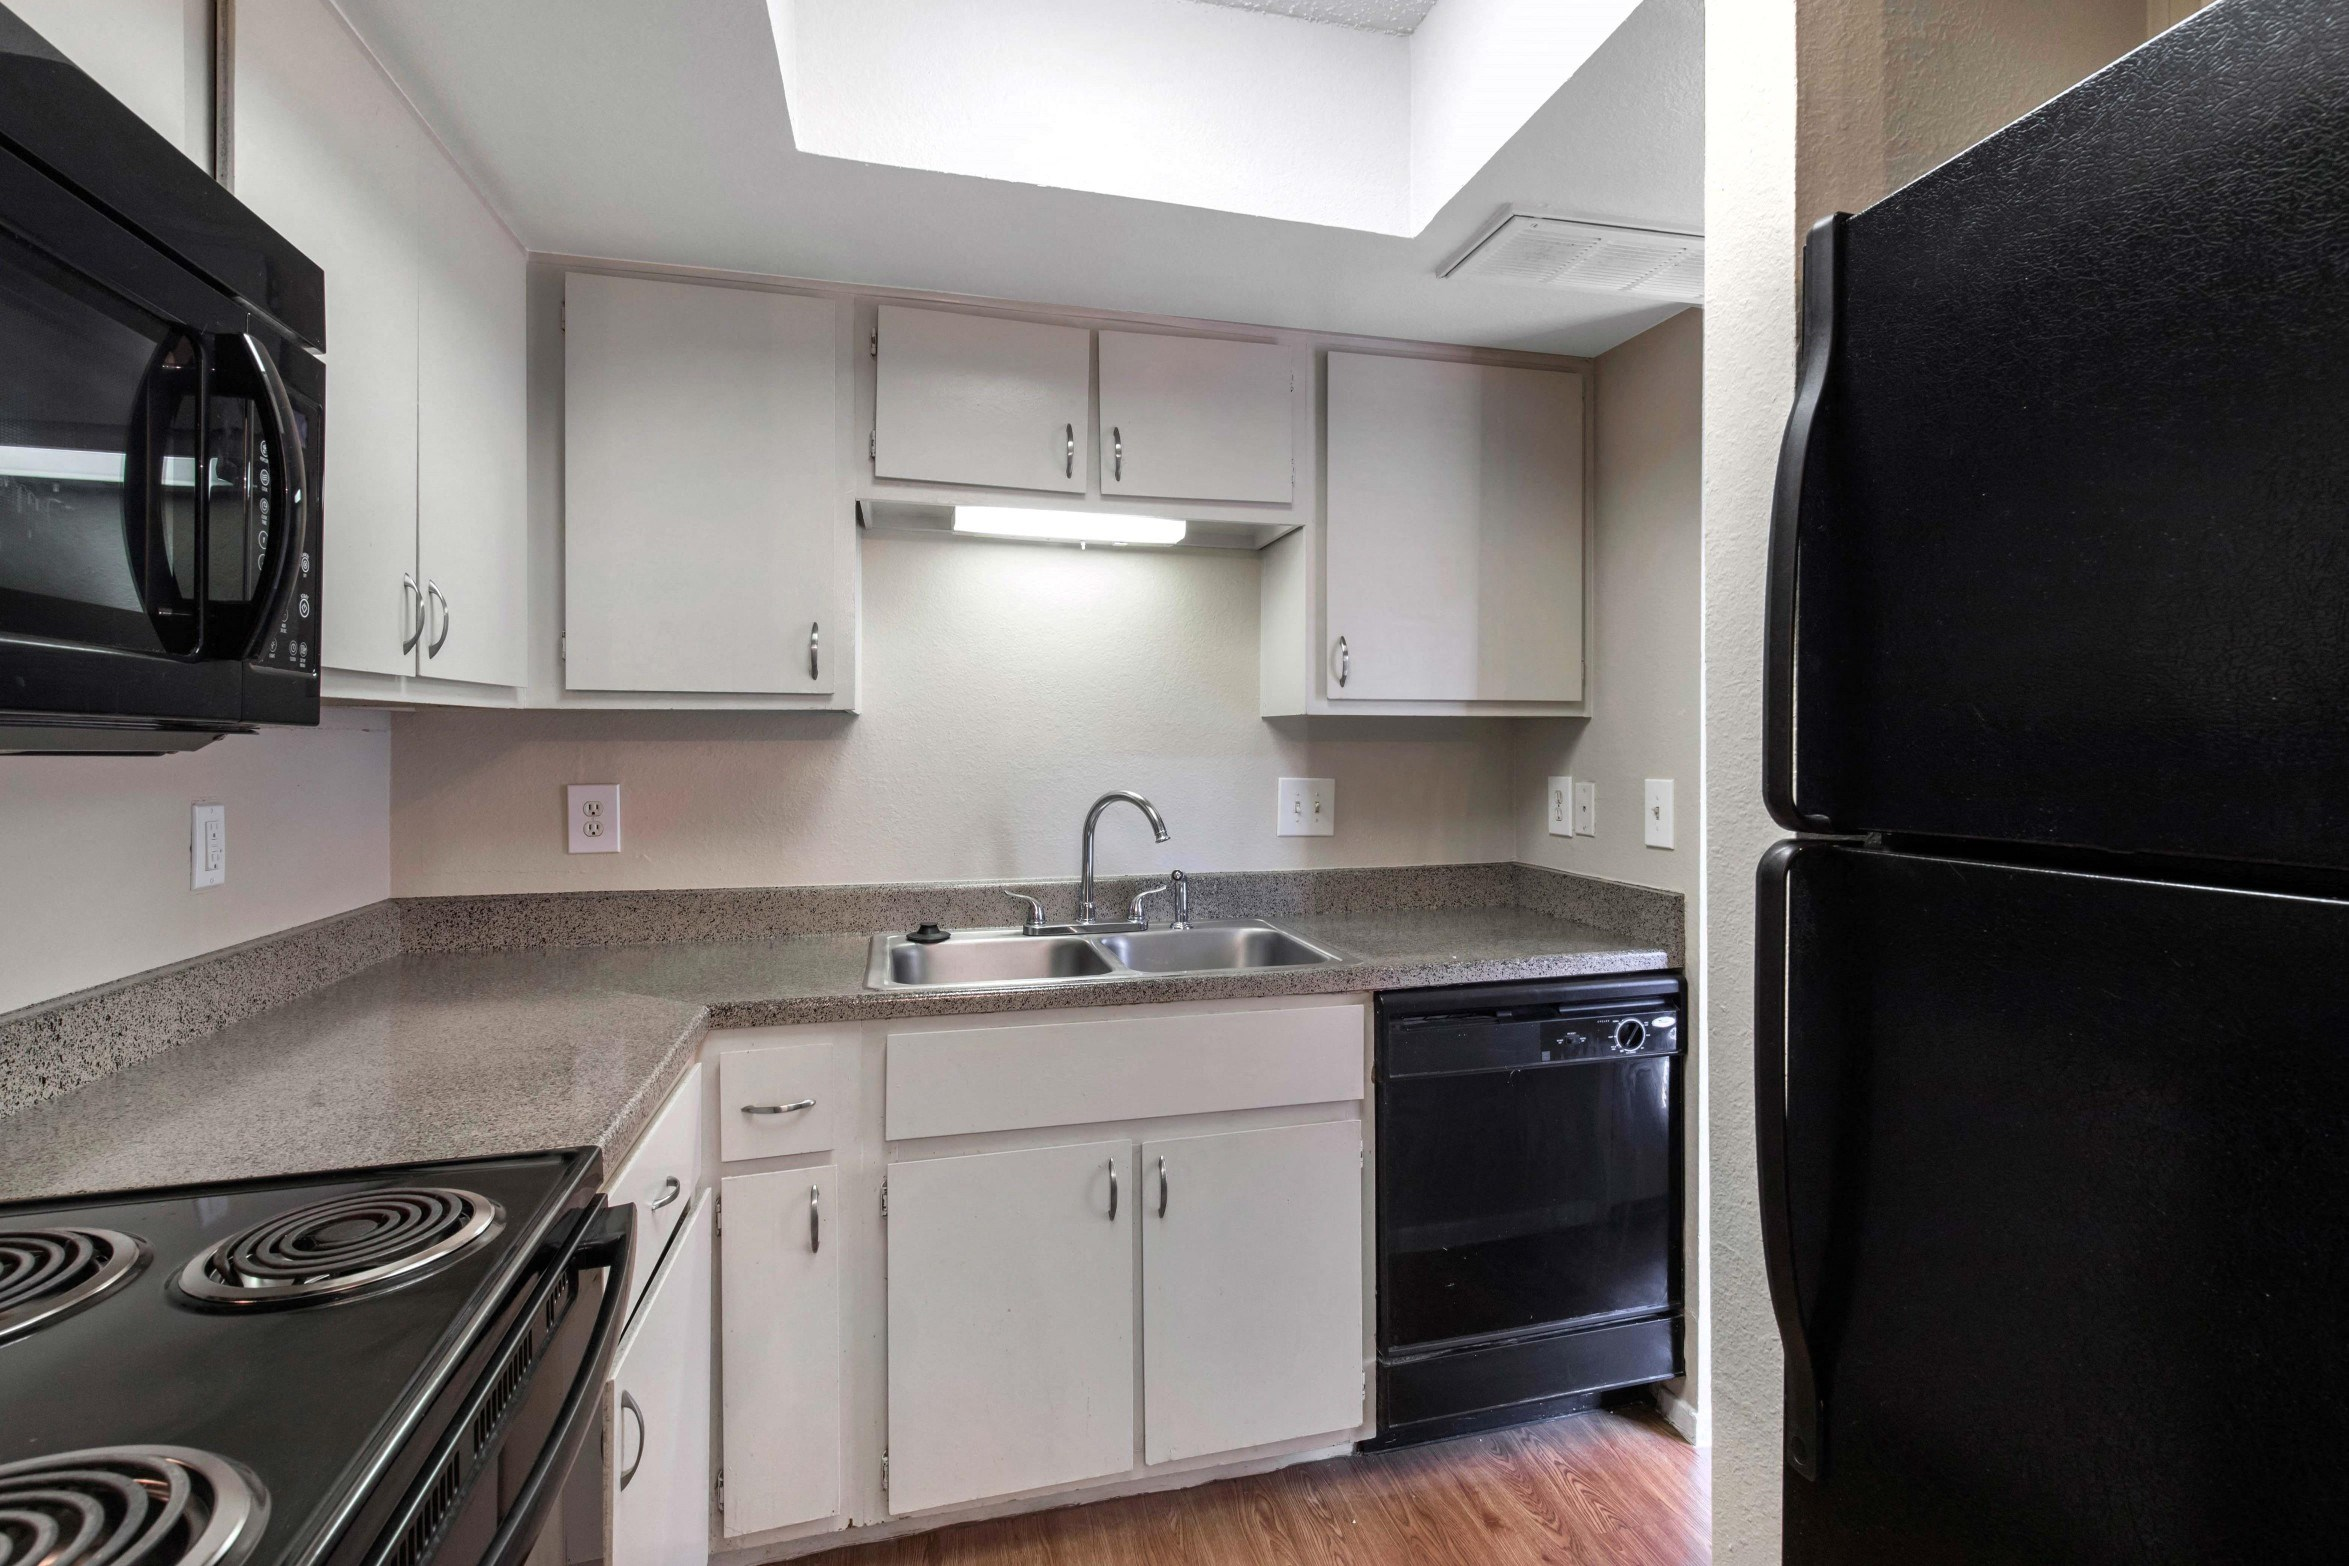 Briarcrest Kitchen with Black Appliances and double basin sink